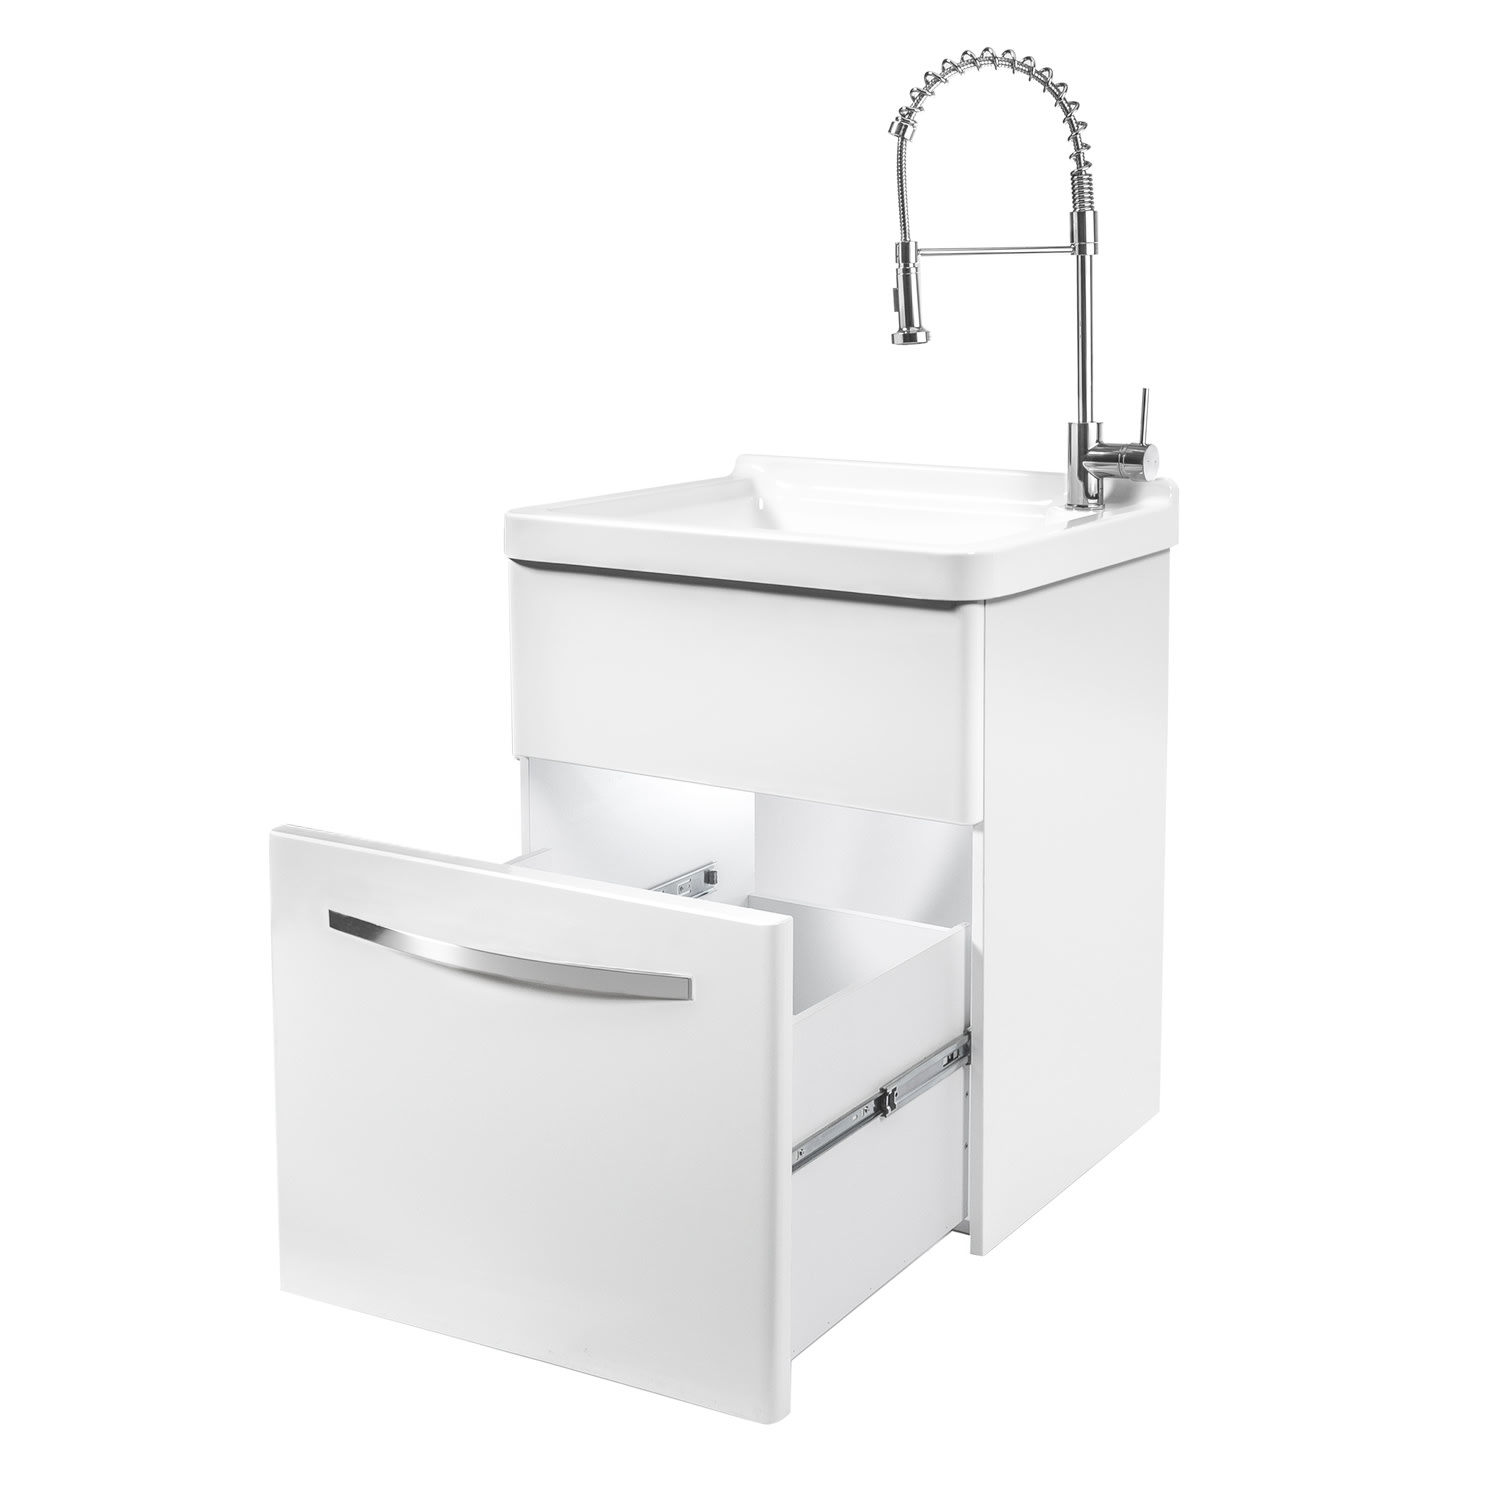 Transform Acrylic Utility Sink With, Westinghouse Laundry Sink With Cabinet Costco